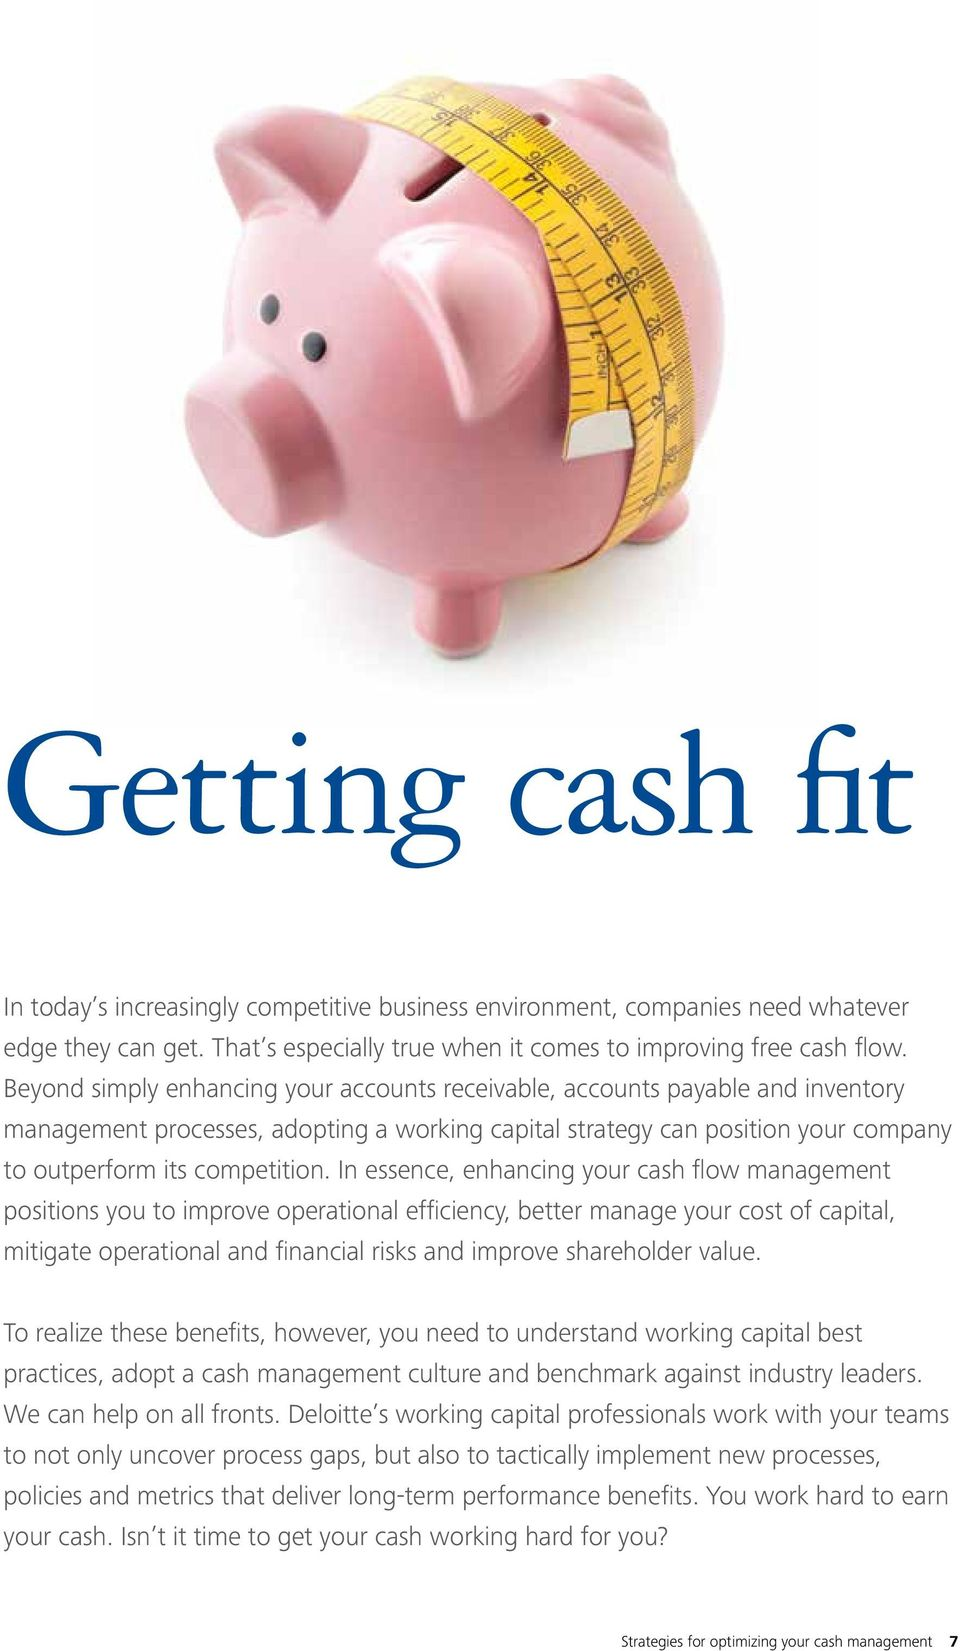 In essence, enhancing your cash flow management positions you to improve operational efficiency, better manage your cost of capital, mitigate operational and financial risks and improve shareholder